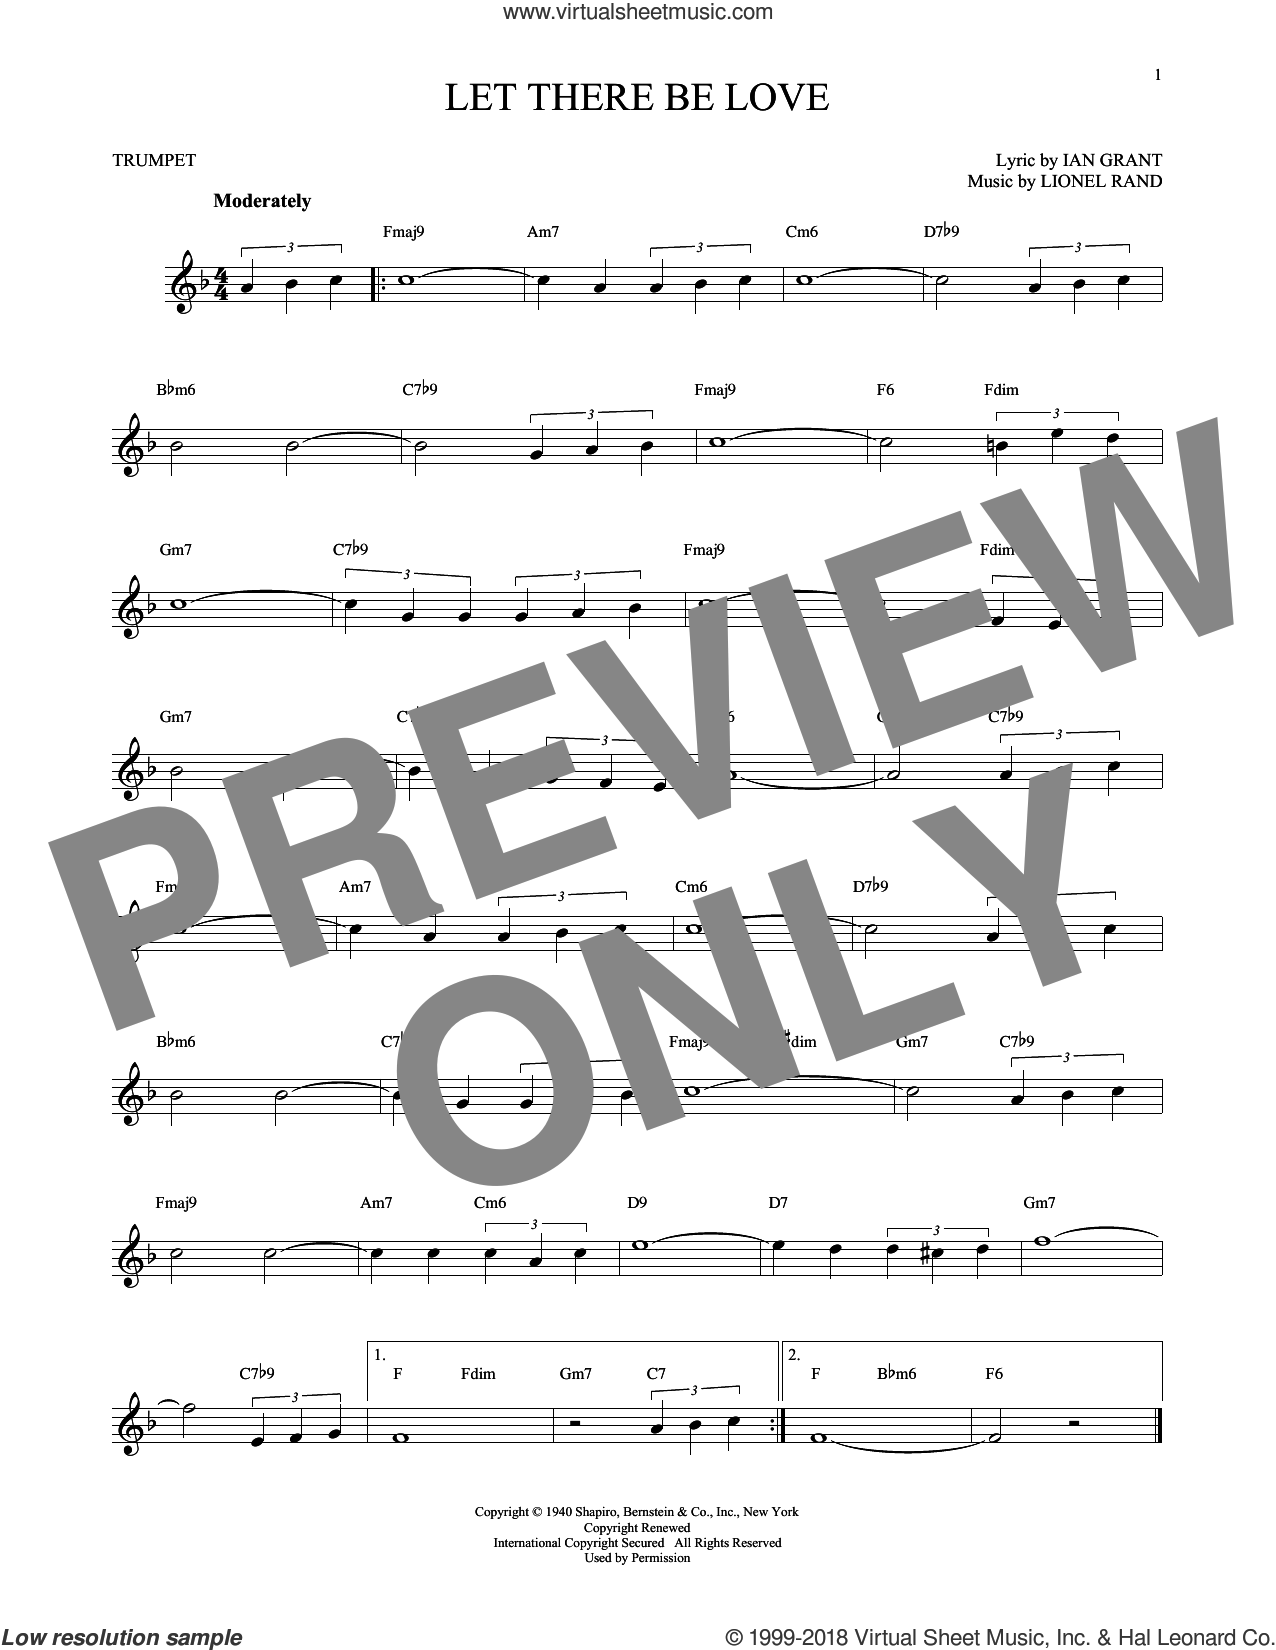 Let There Be Love sheet music for trumpet solo by Ian Grant and Lionel Rand, intermediate skill level